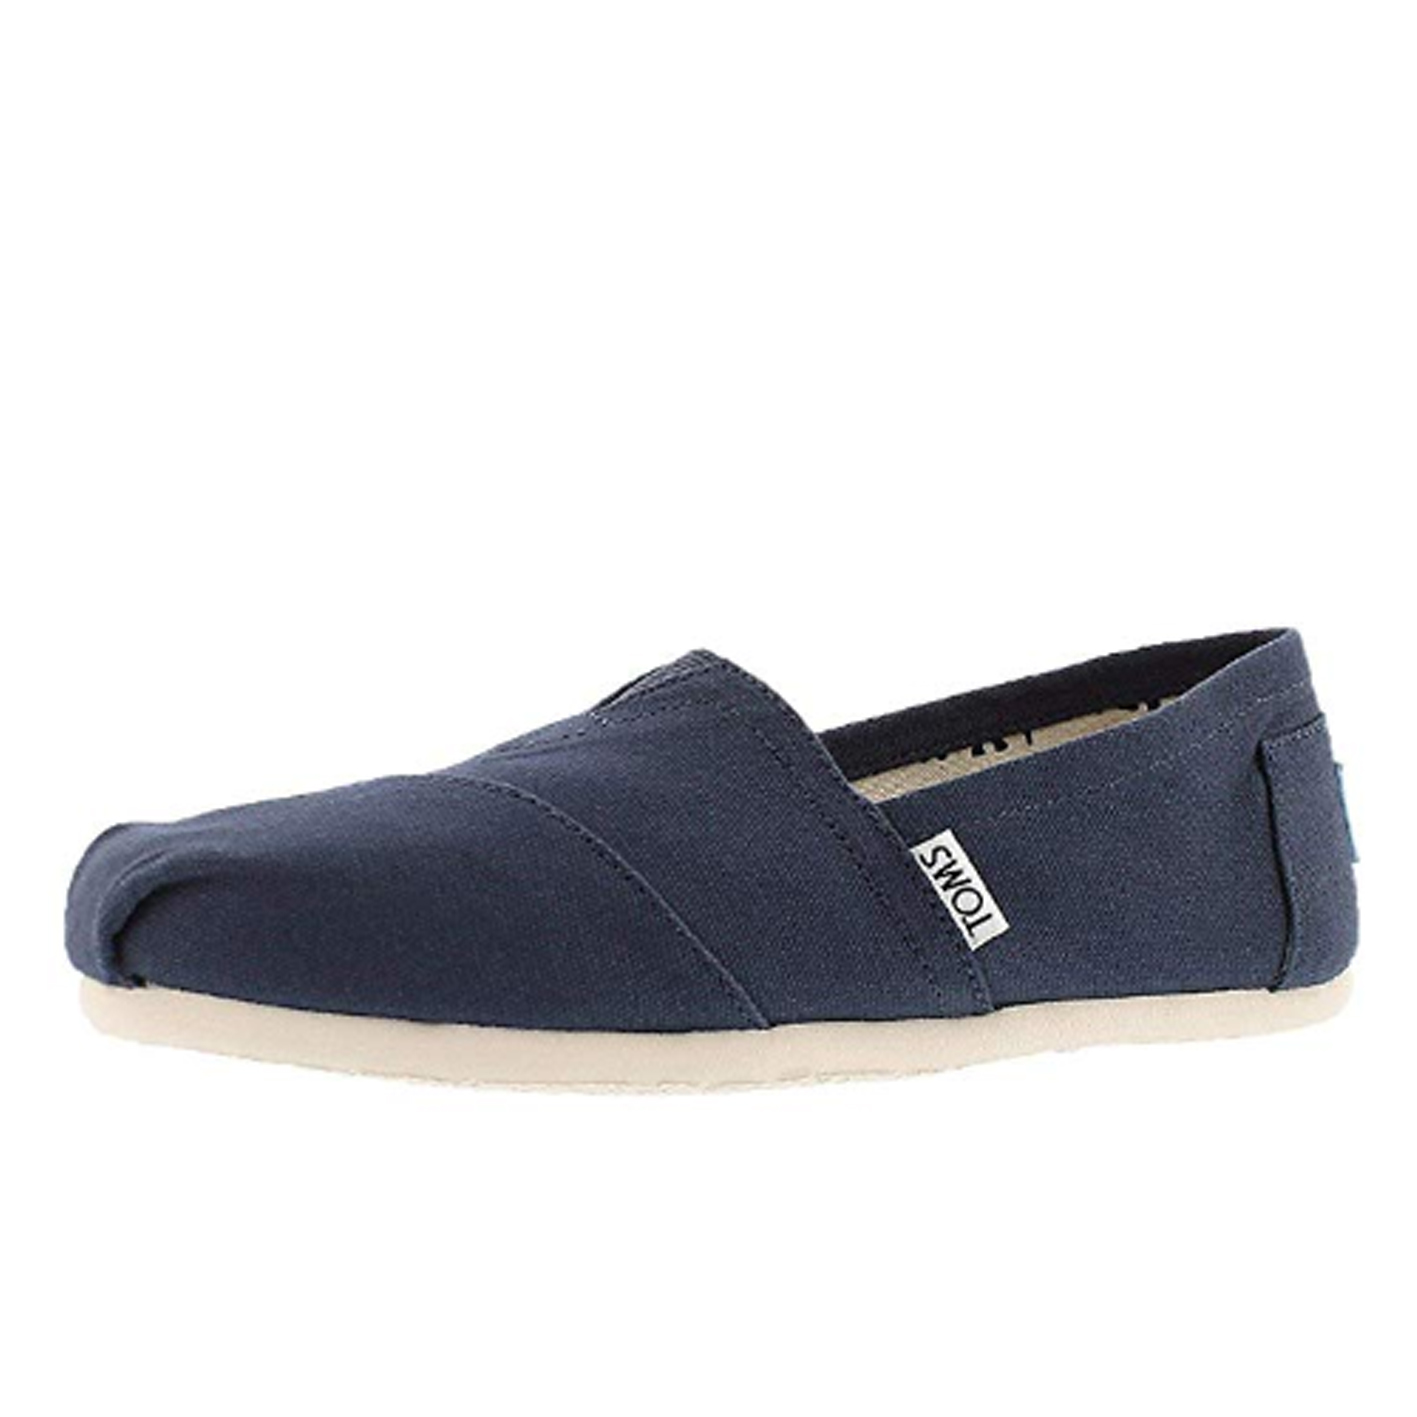 TOMS Women's Classics - Minimalist shoes that look good post by Mama Natural